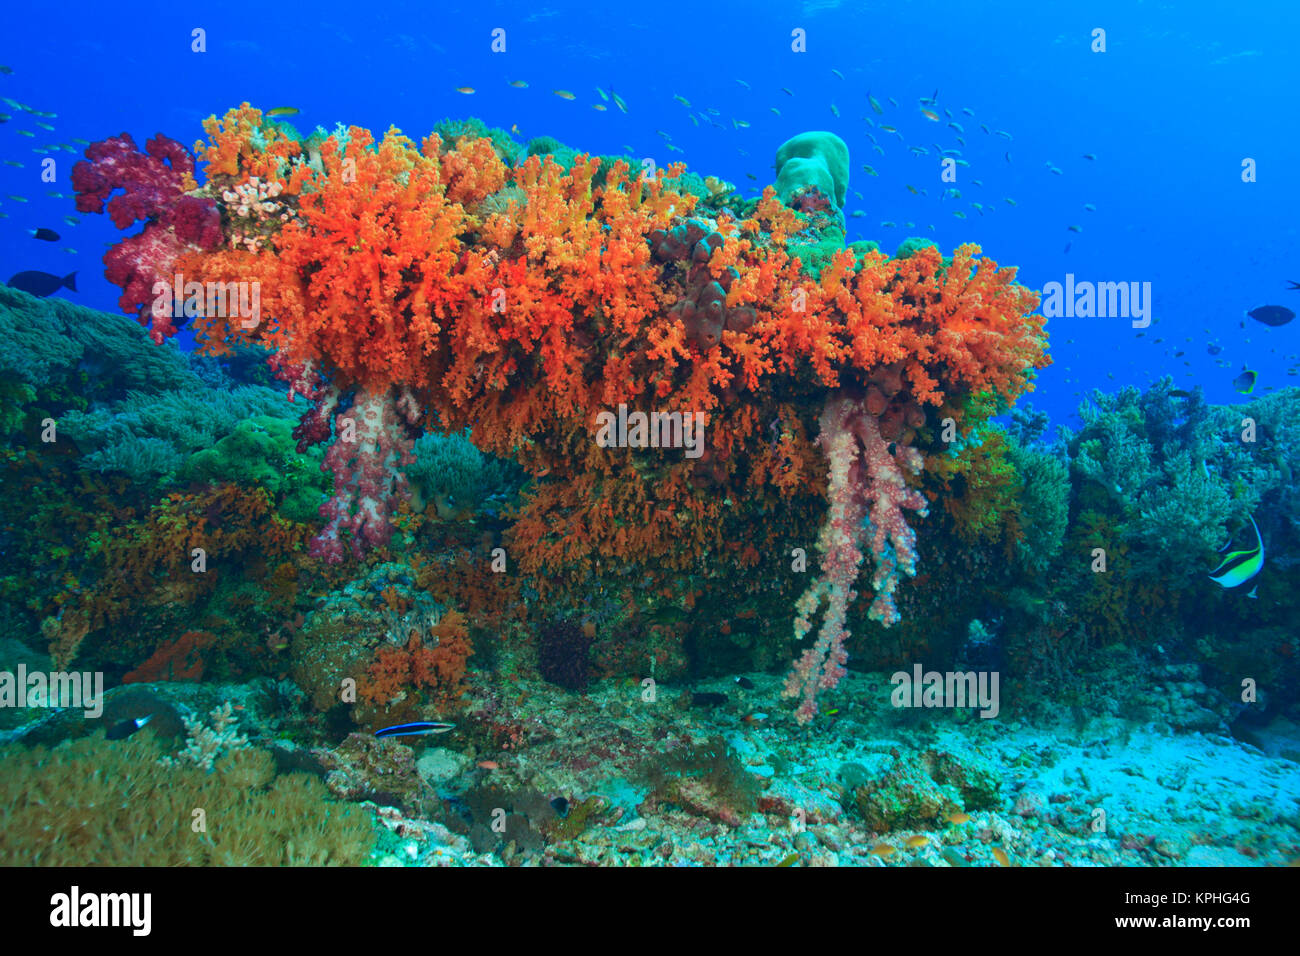 Profuse and colorful soft corals (Dendronepthya sp.)  Raja Ampat region of Papua (formerly Irian Jaya) - Stock Image